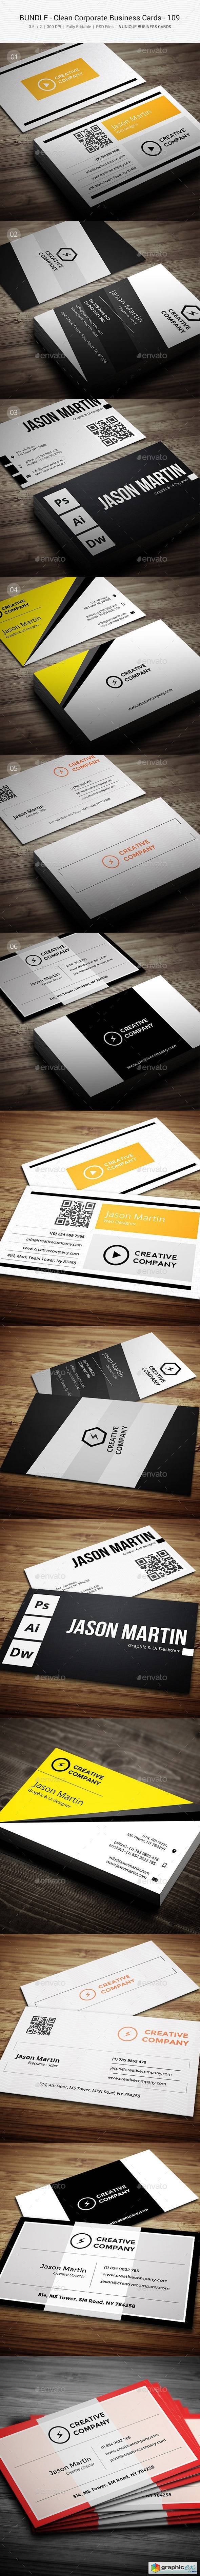 6 in 1 Clean Corporate Business Cards 109